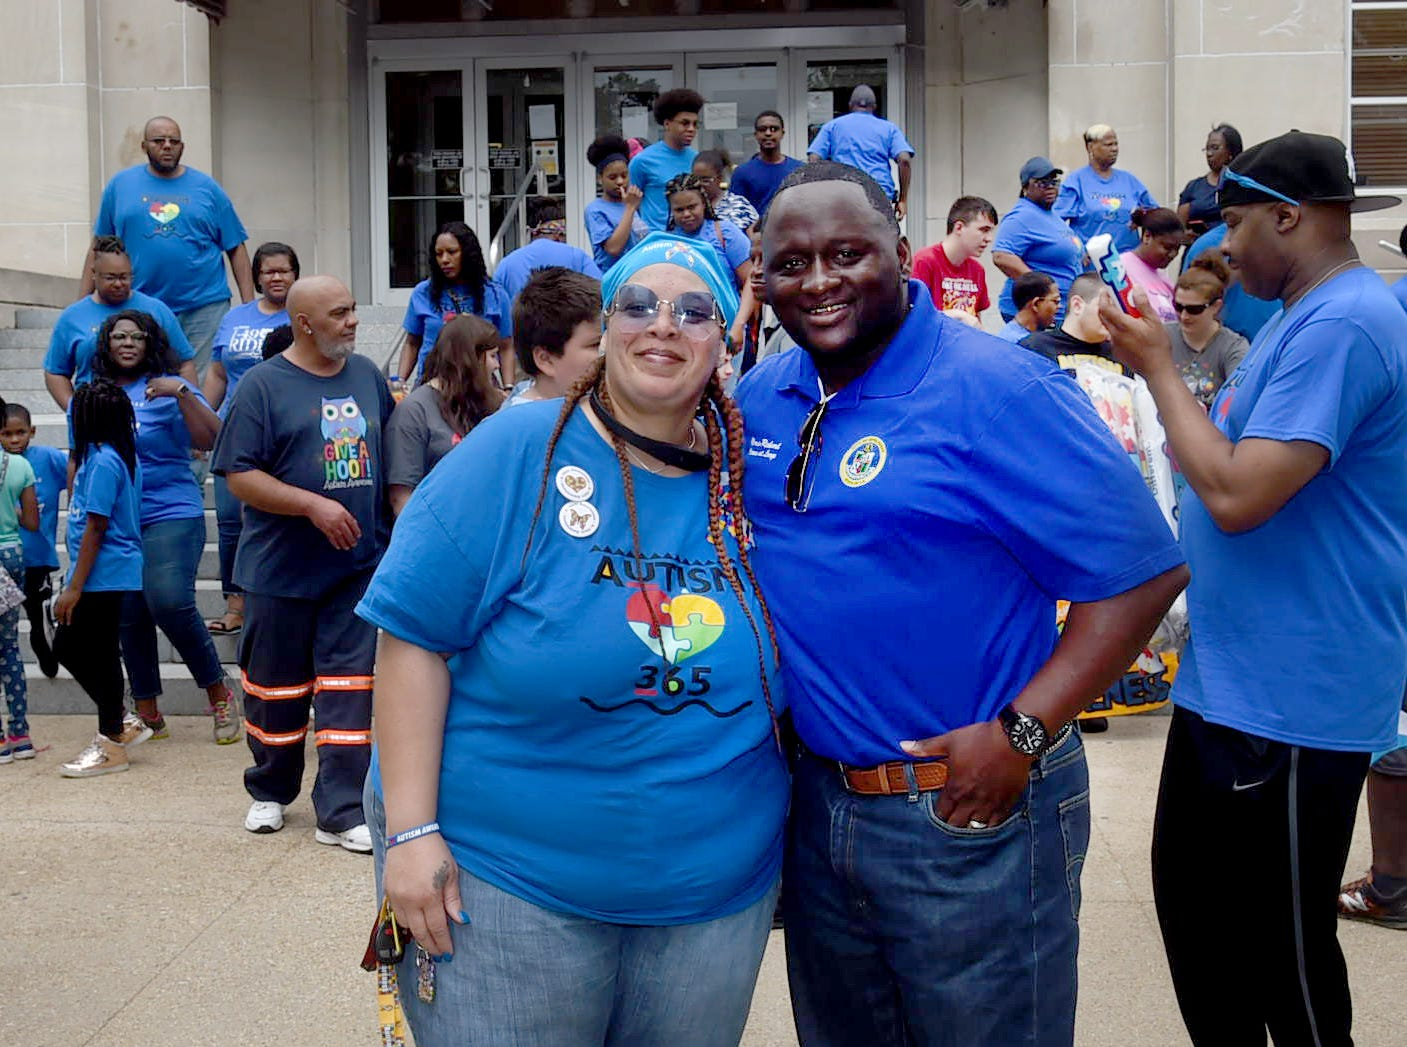 Autism Awareness March held Saturday in downtown Opelousas.